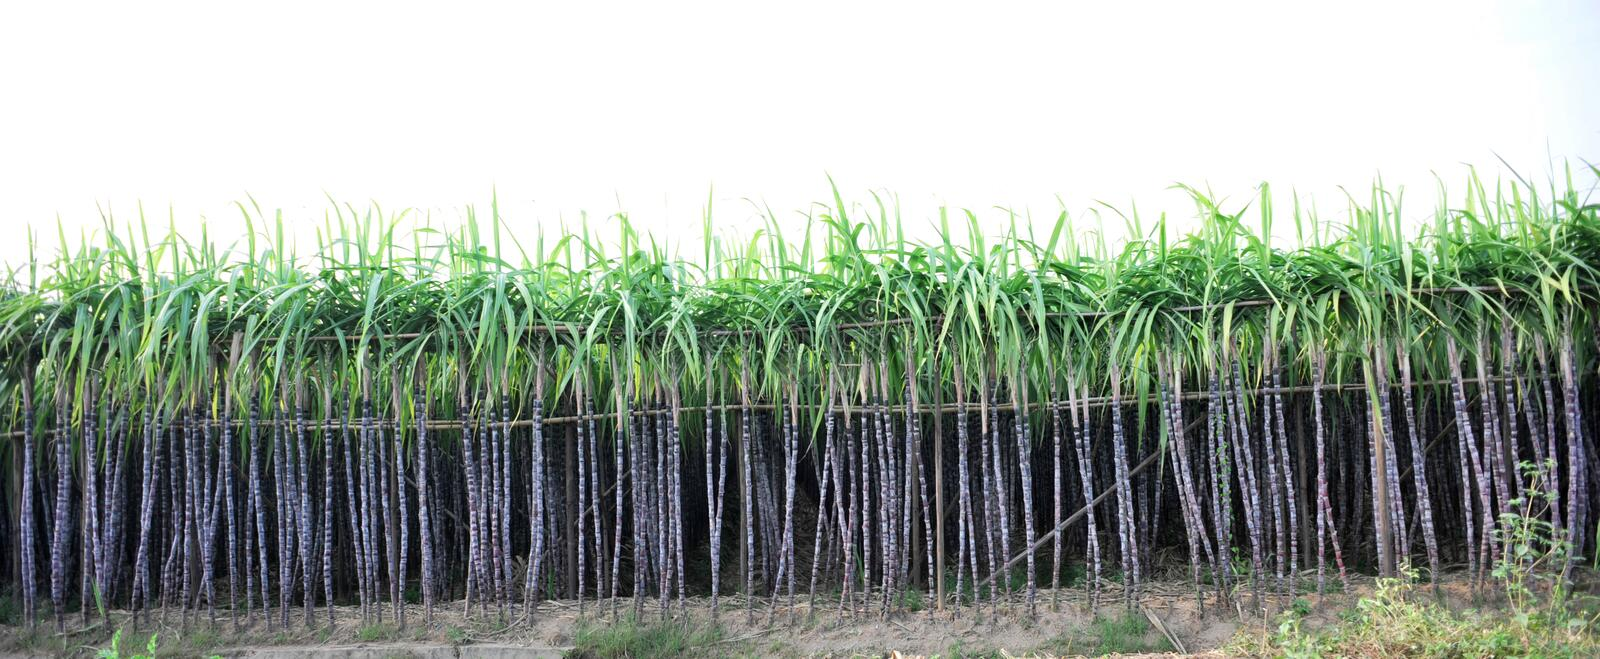 Farm of sugarcane. Black sugar cane plants at field royalty free stock photography